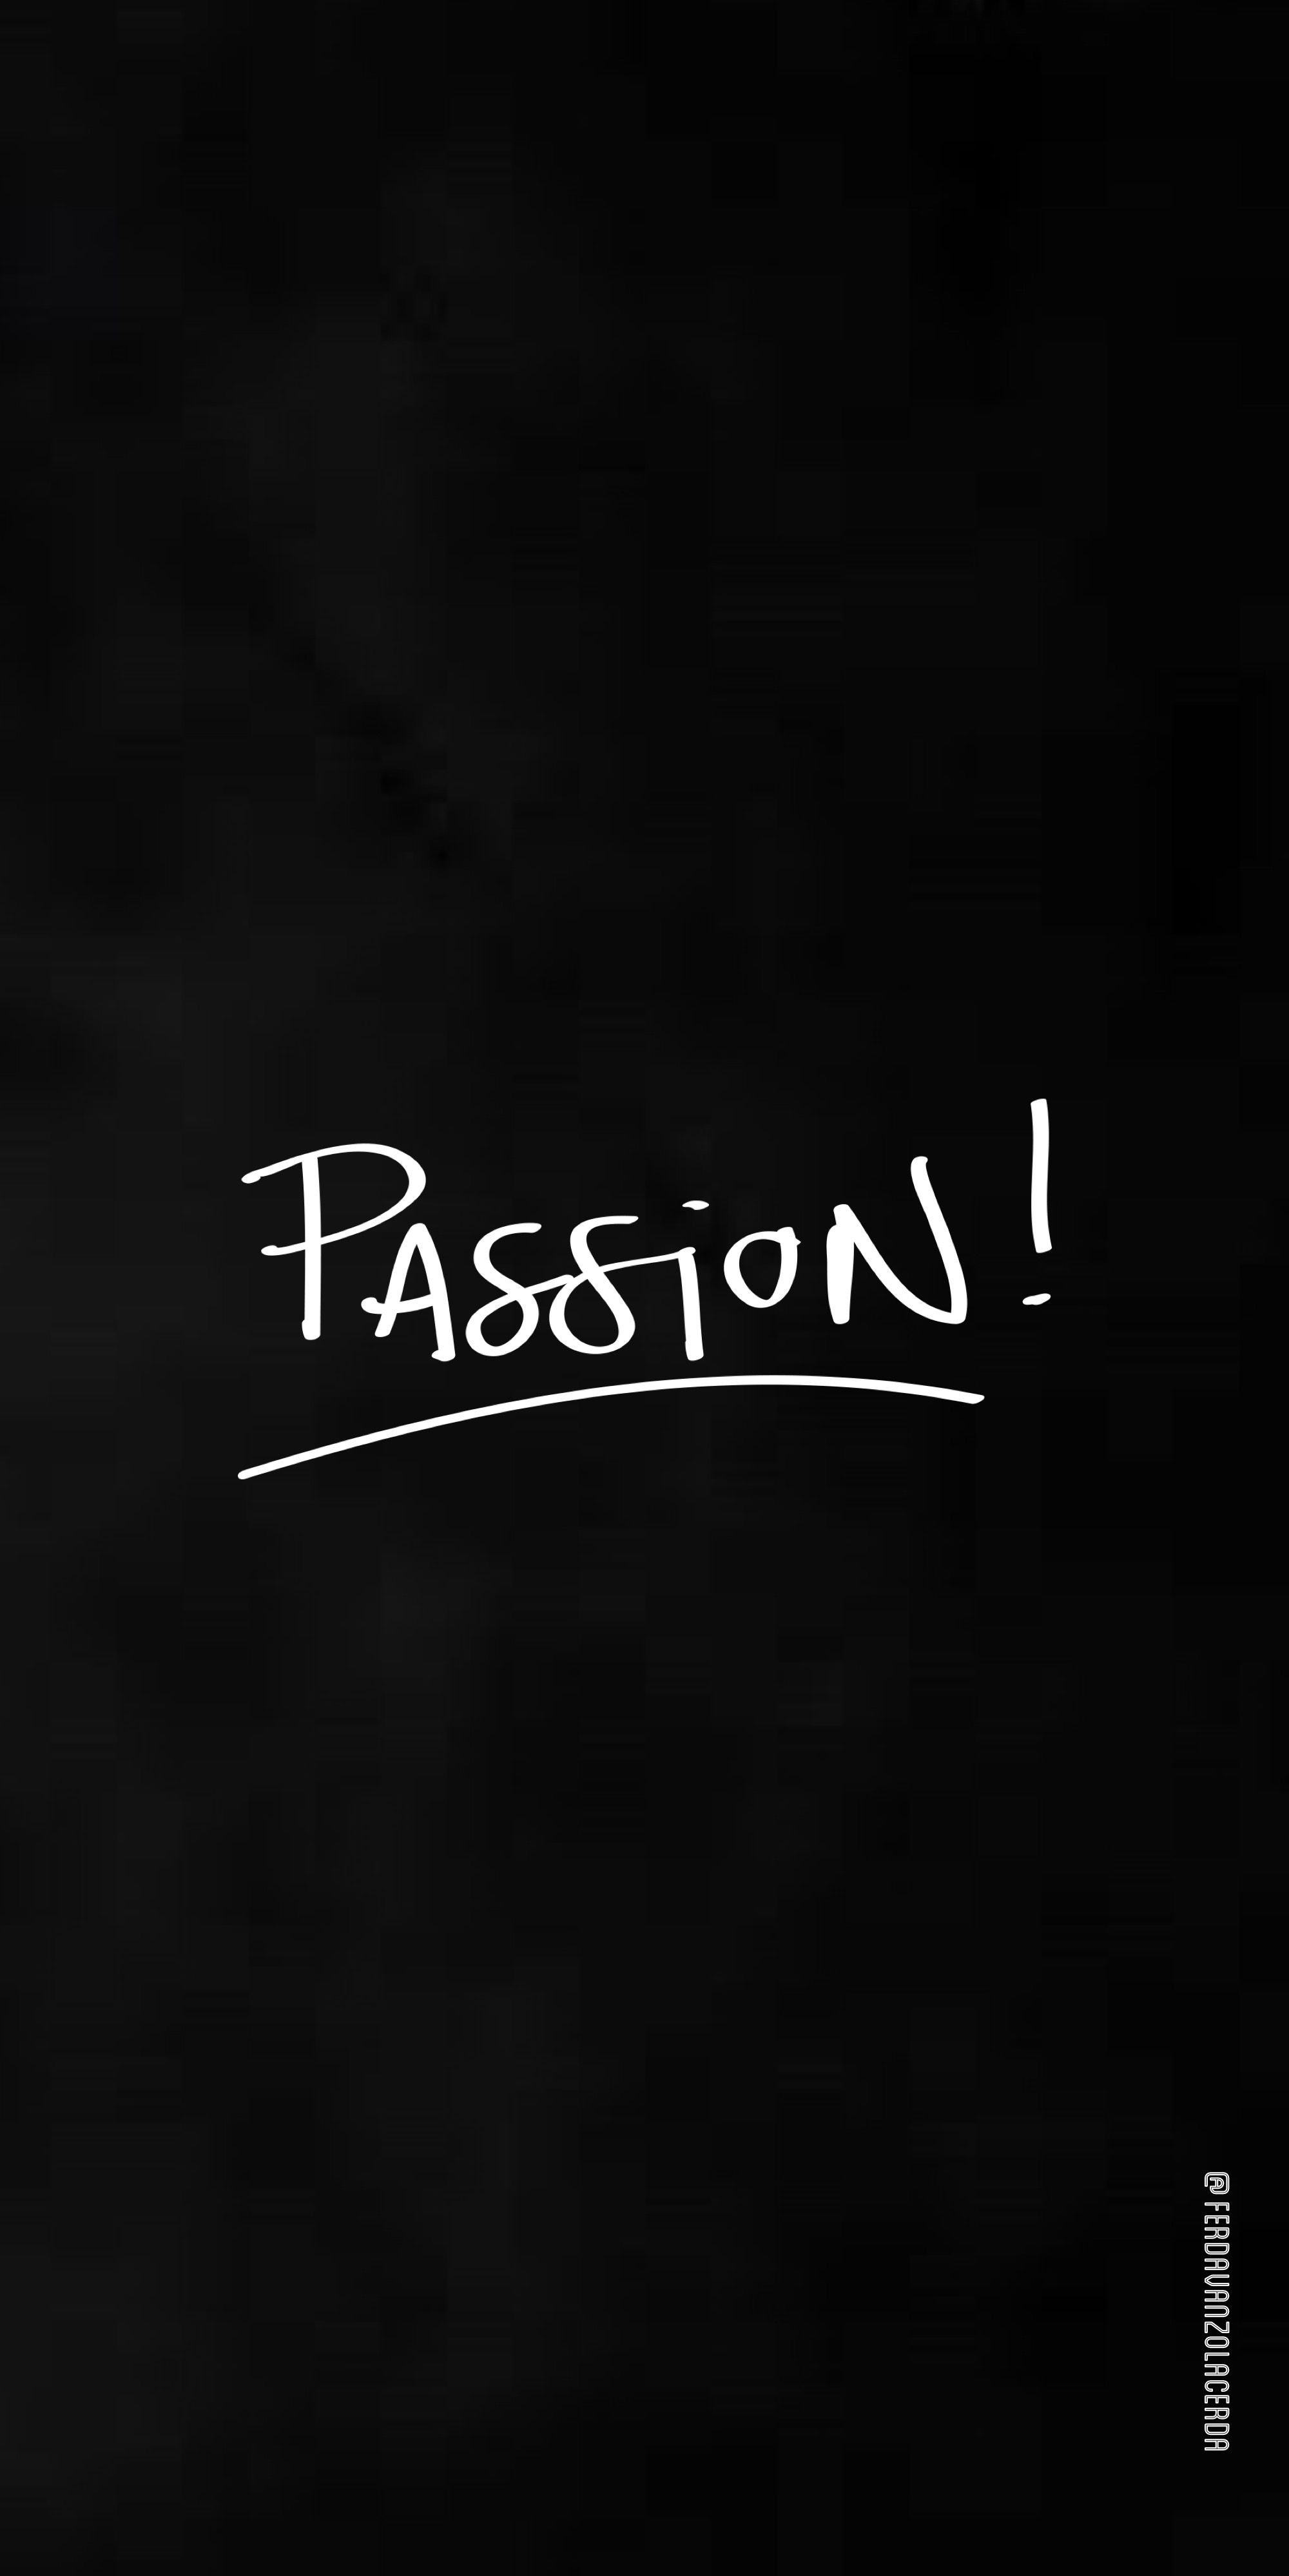 Passion Iphone Background Quote Quotes To Live By Motivational Wallpaper